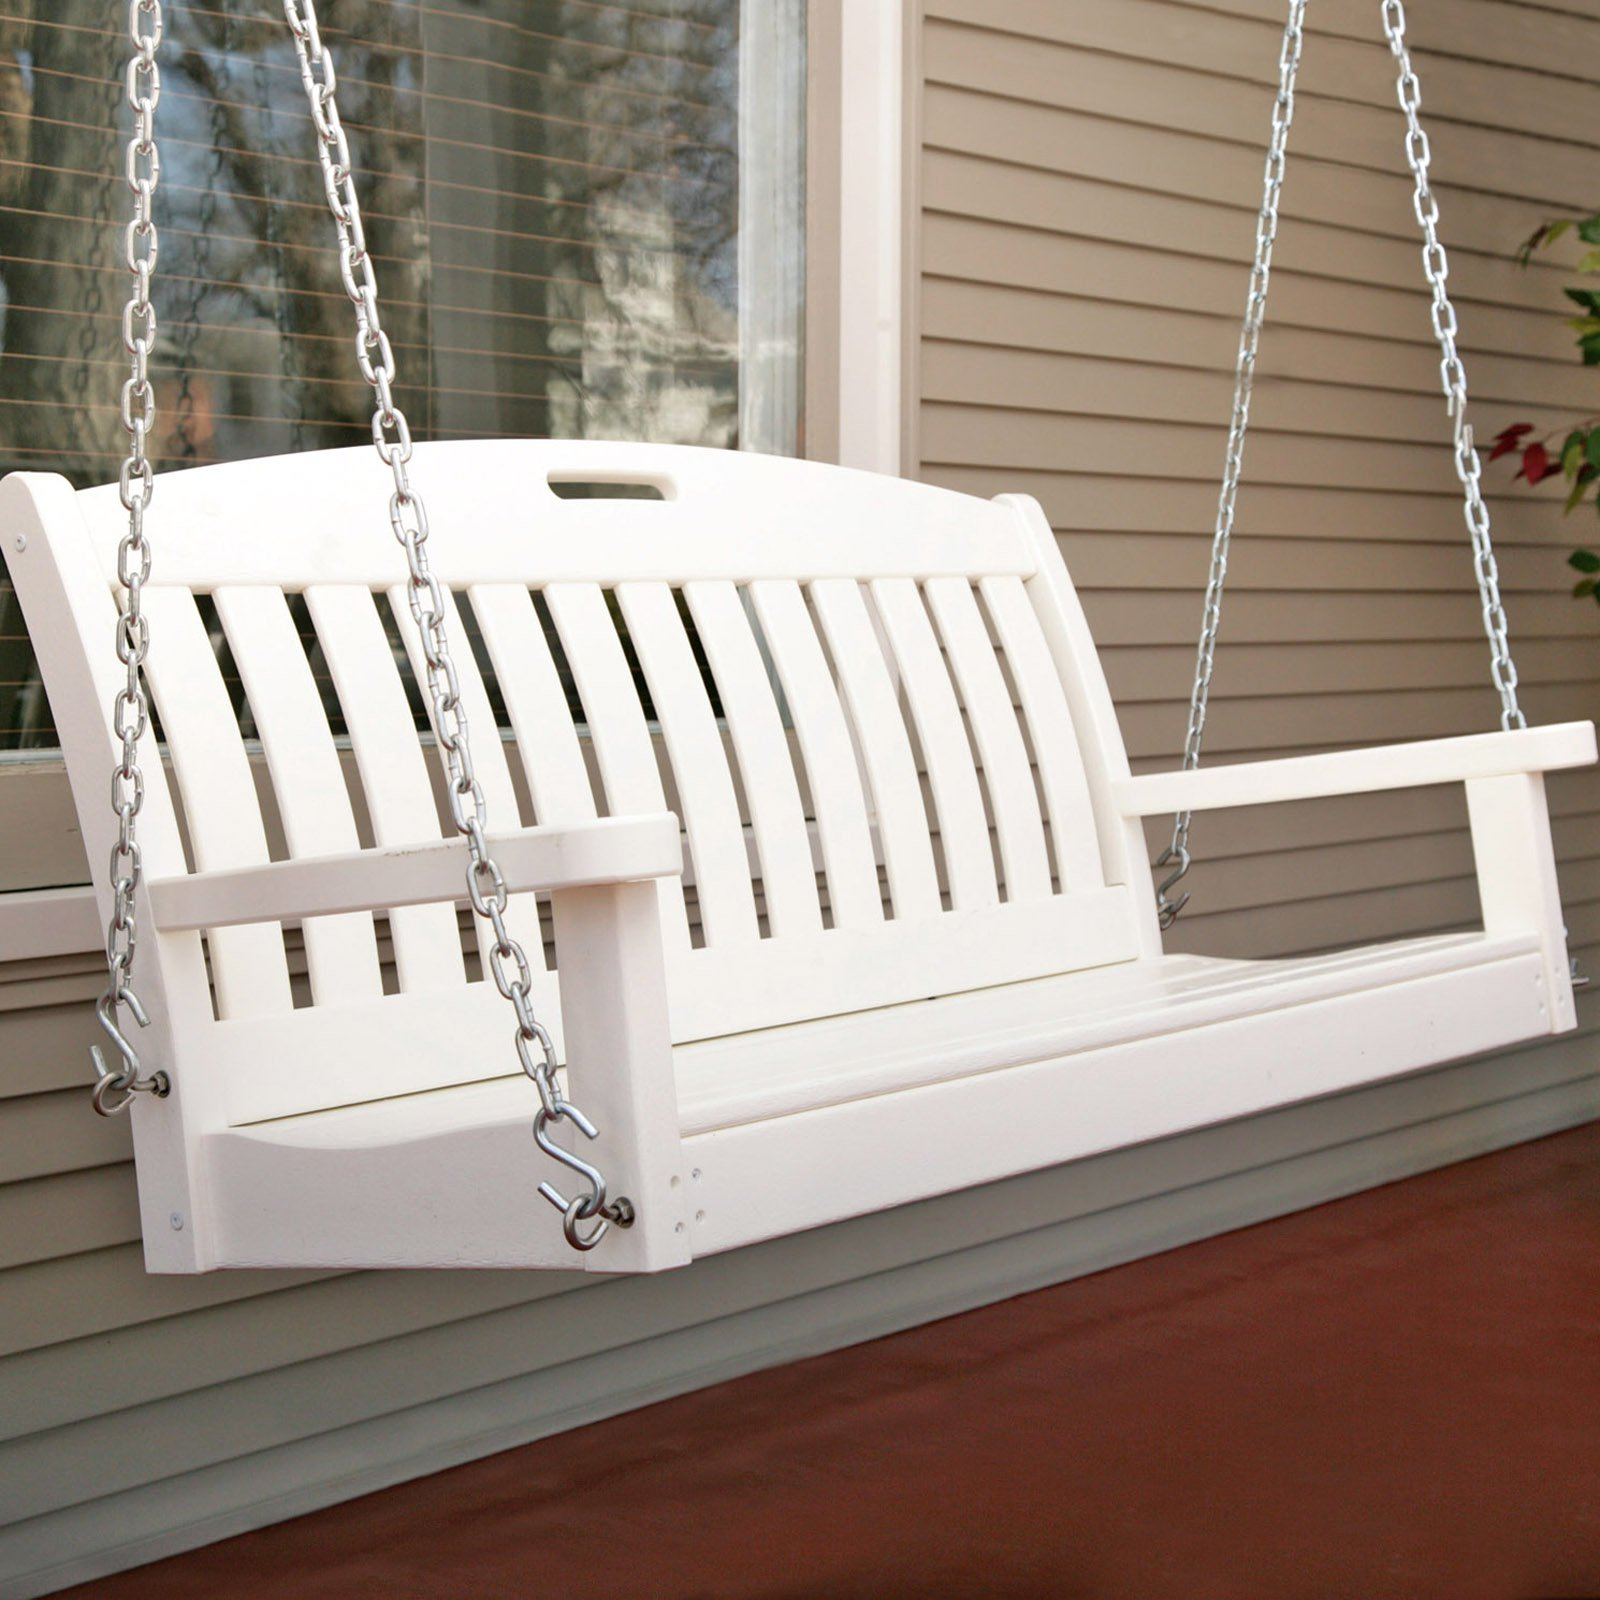 POLYWOODu0026reg; Nautical 4 Ft. Recycled Plastic Porch Swing   White    Walmart.com